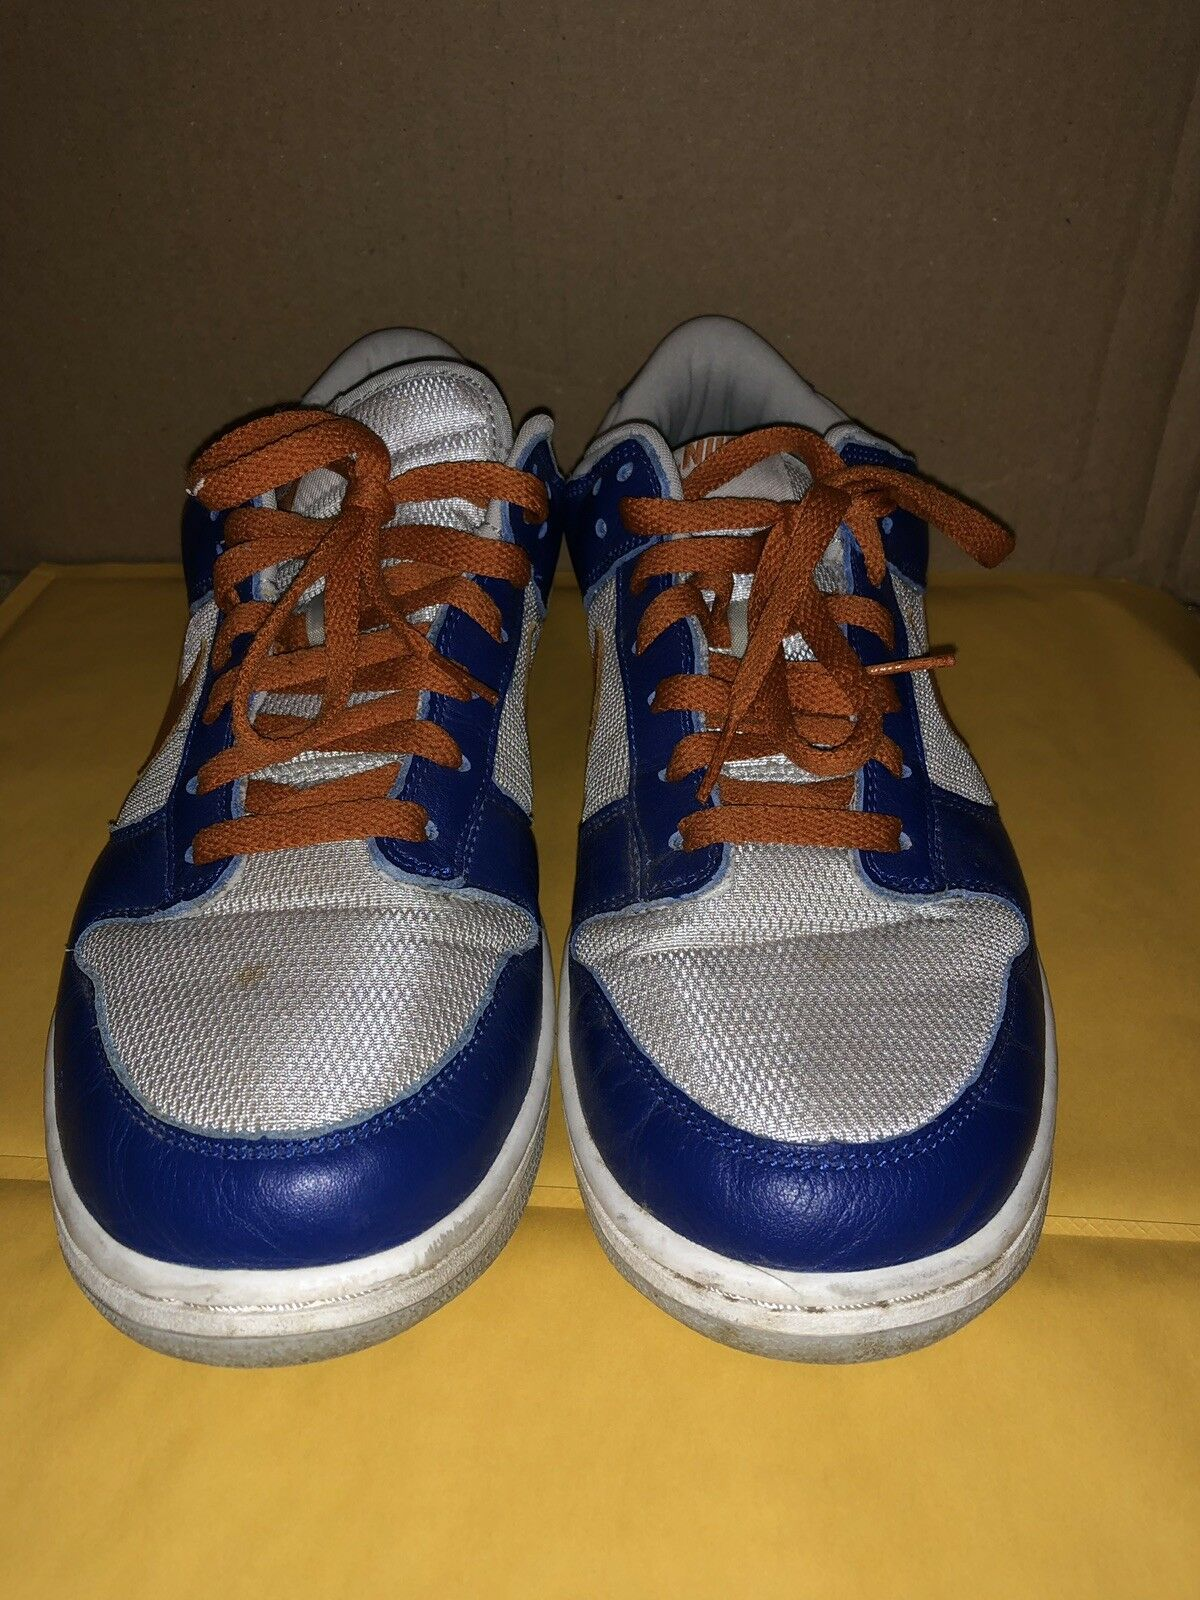 2003 Nike Dunk Low Pro NEW YORK NY KNICKS ROYAL blueE orange GREY 624044 11.5